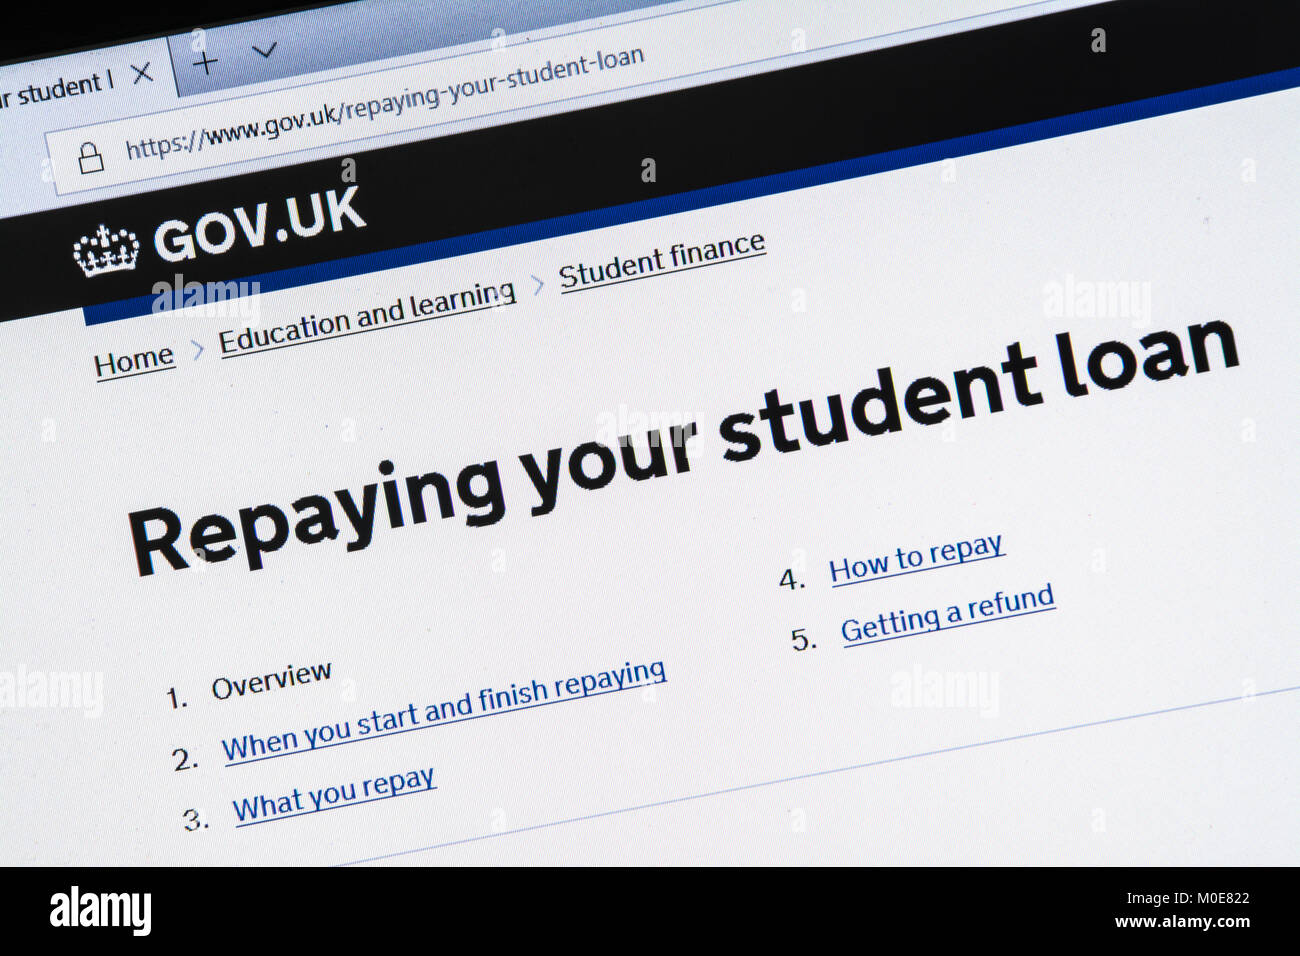 Computer screenshot of information about repaying your student loan on gov.uk website - Stock Image